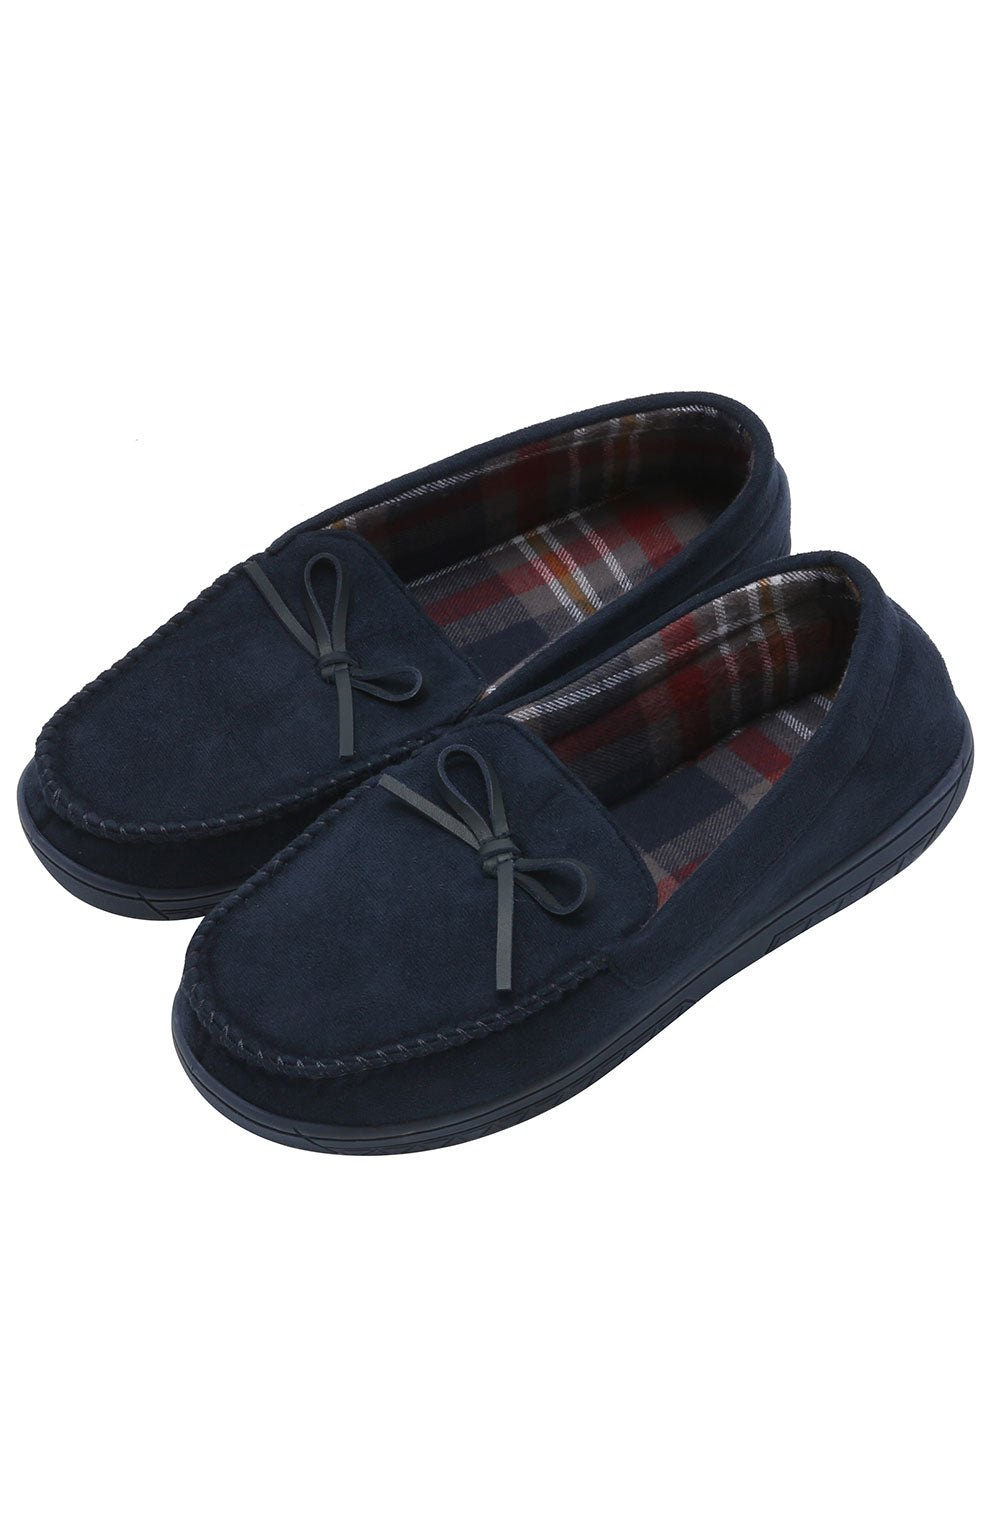 Navy Faux-Suede Moccasin Slipper - jachs